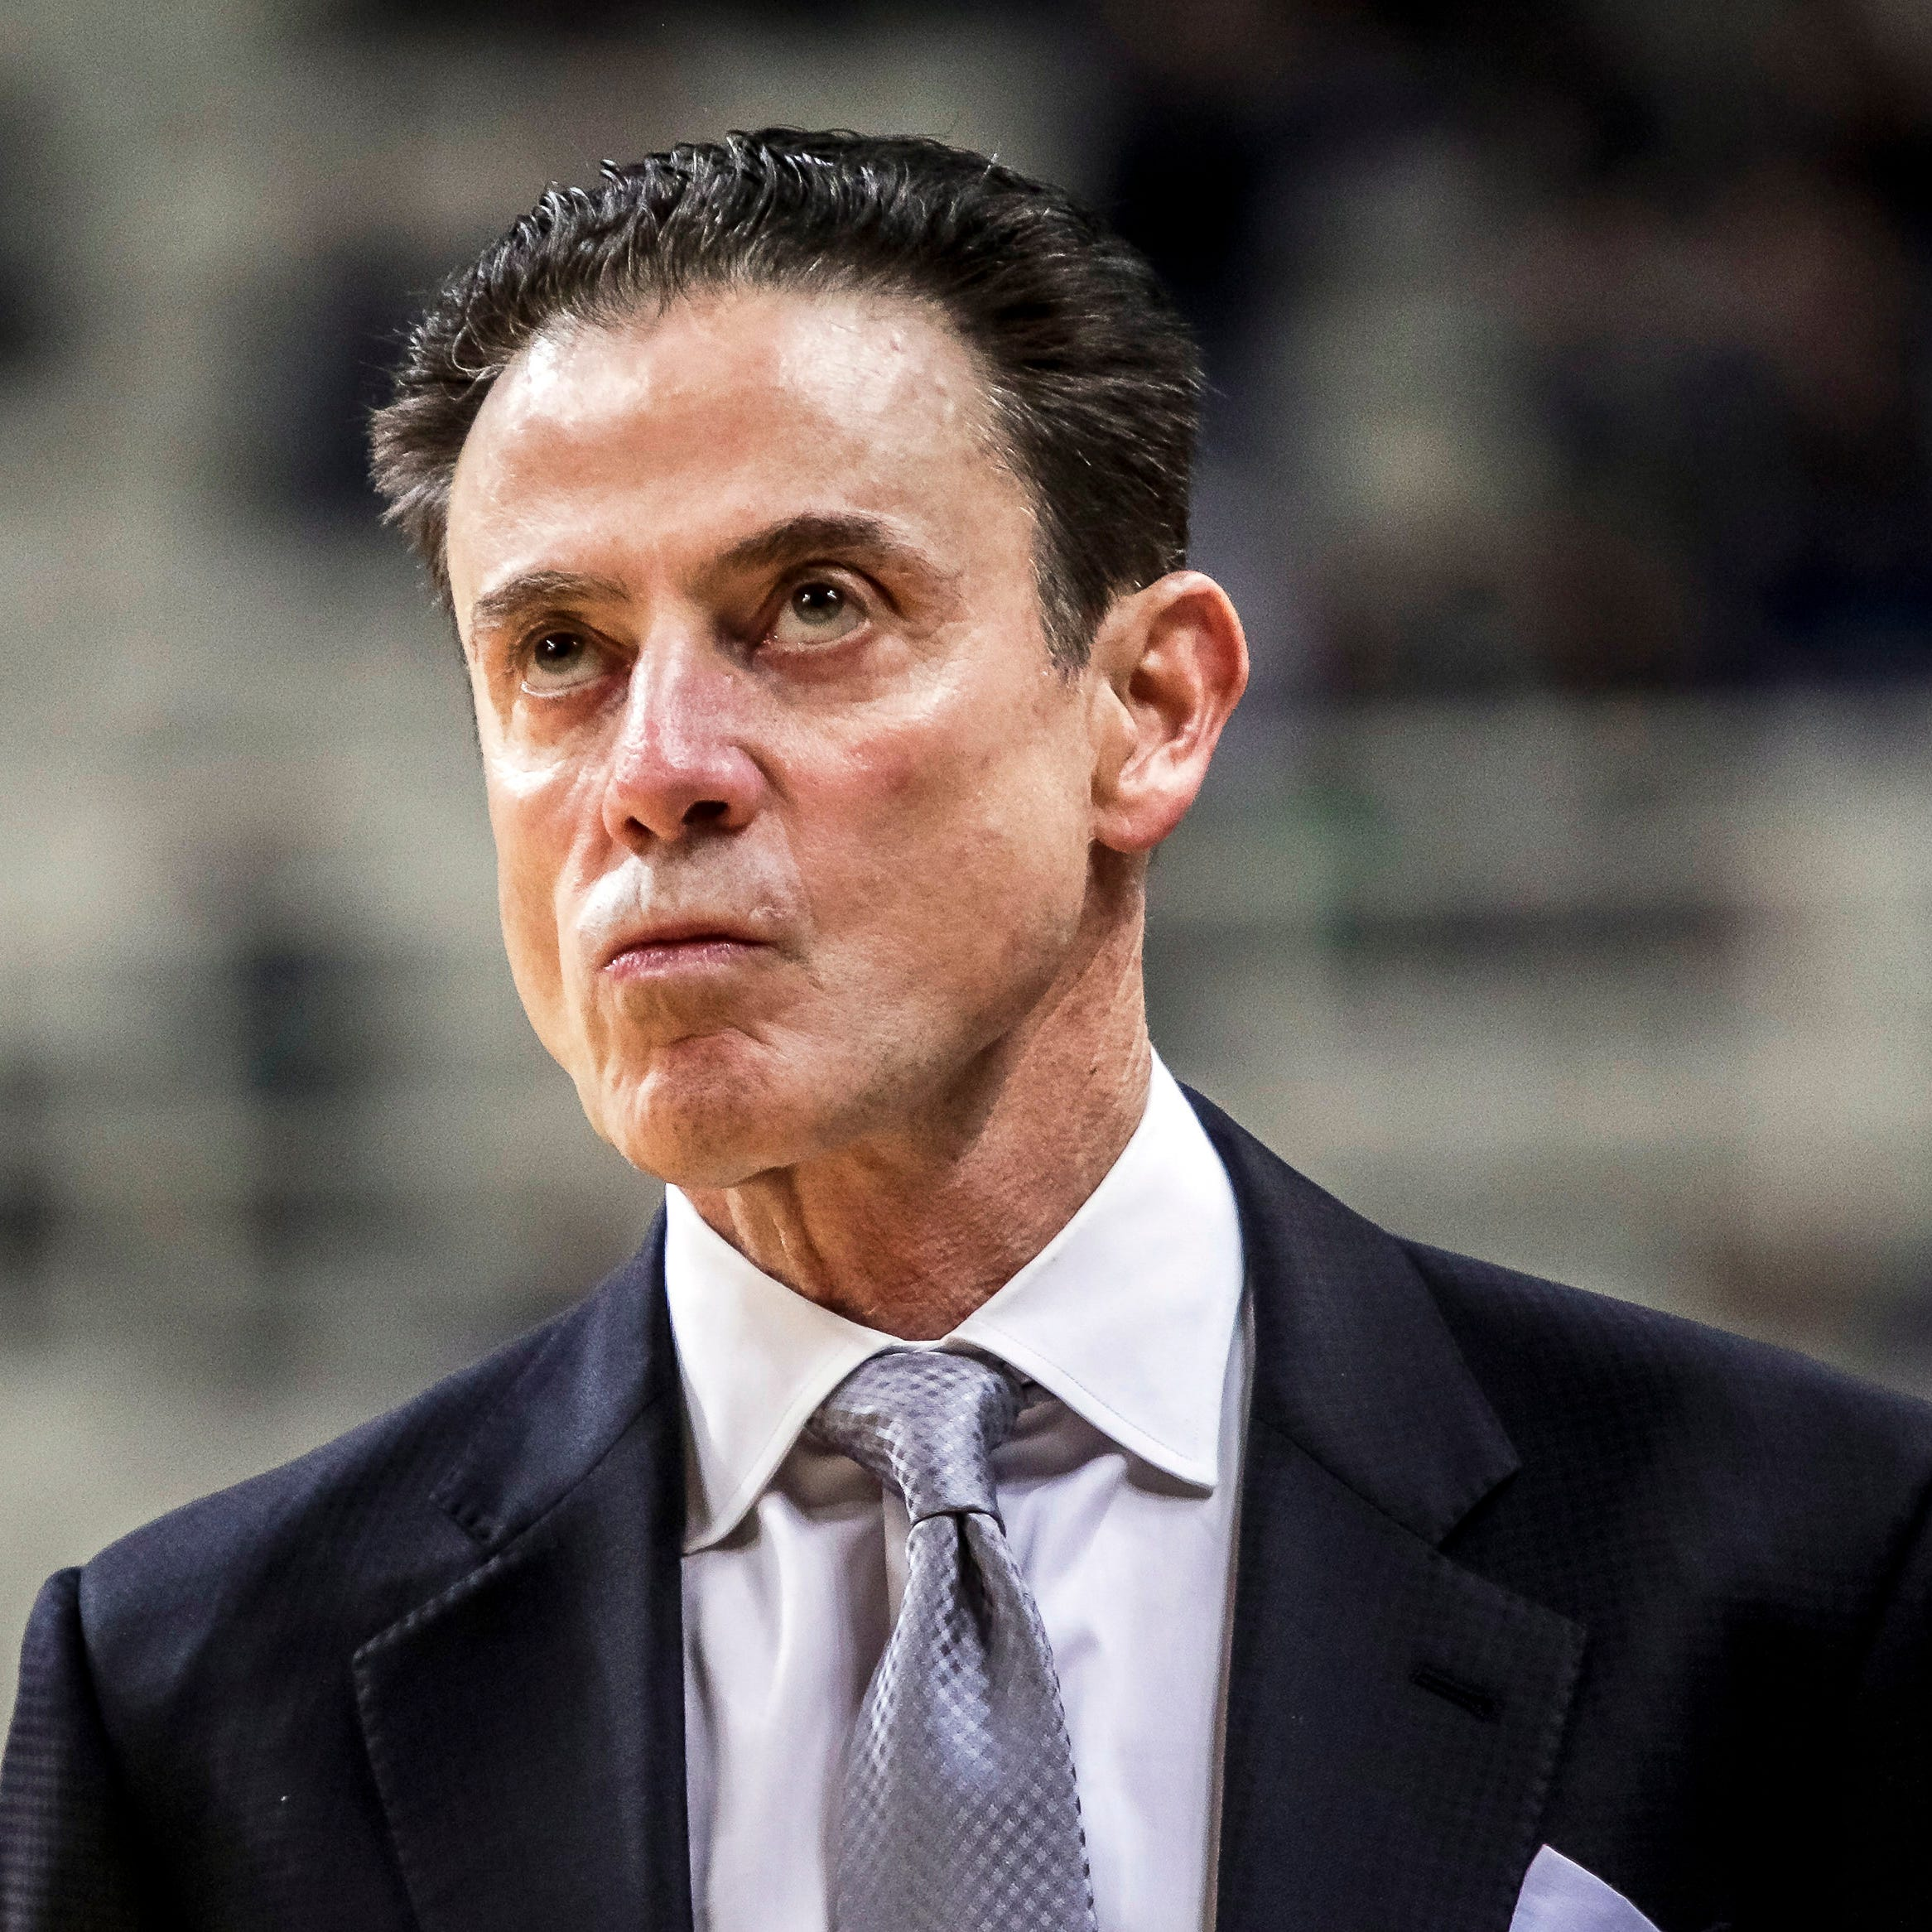 UCLA missed its chance to get the best available coach — Rick Pitino